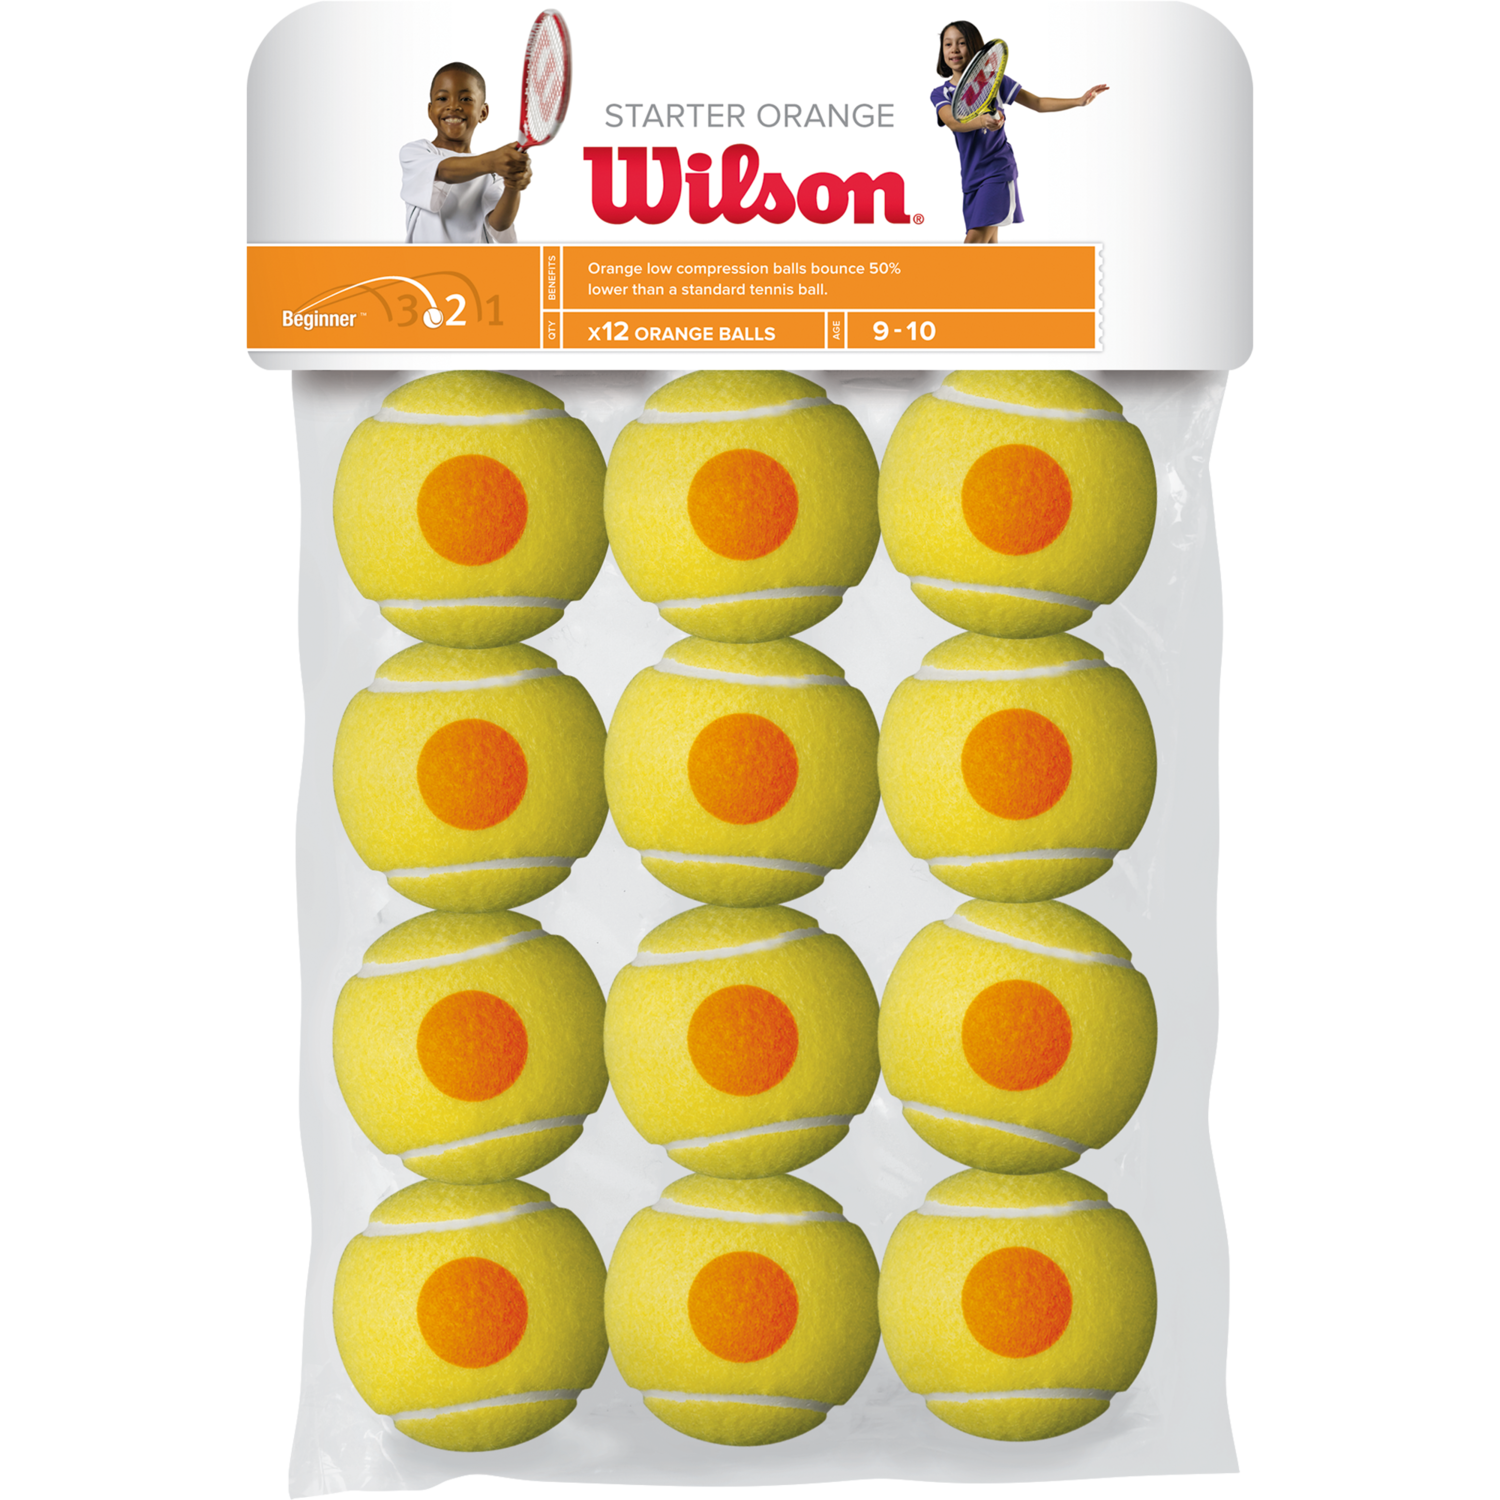 Wilson Starter Orange Tennis Balls - 12 Pack